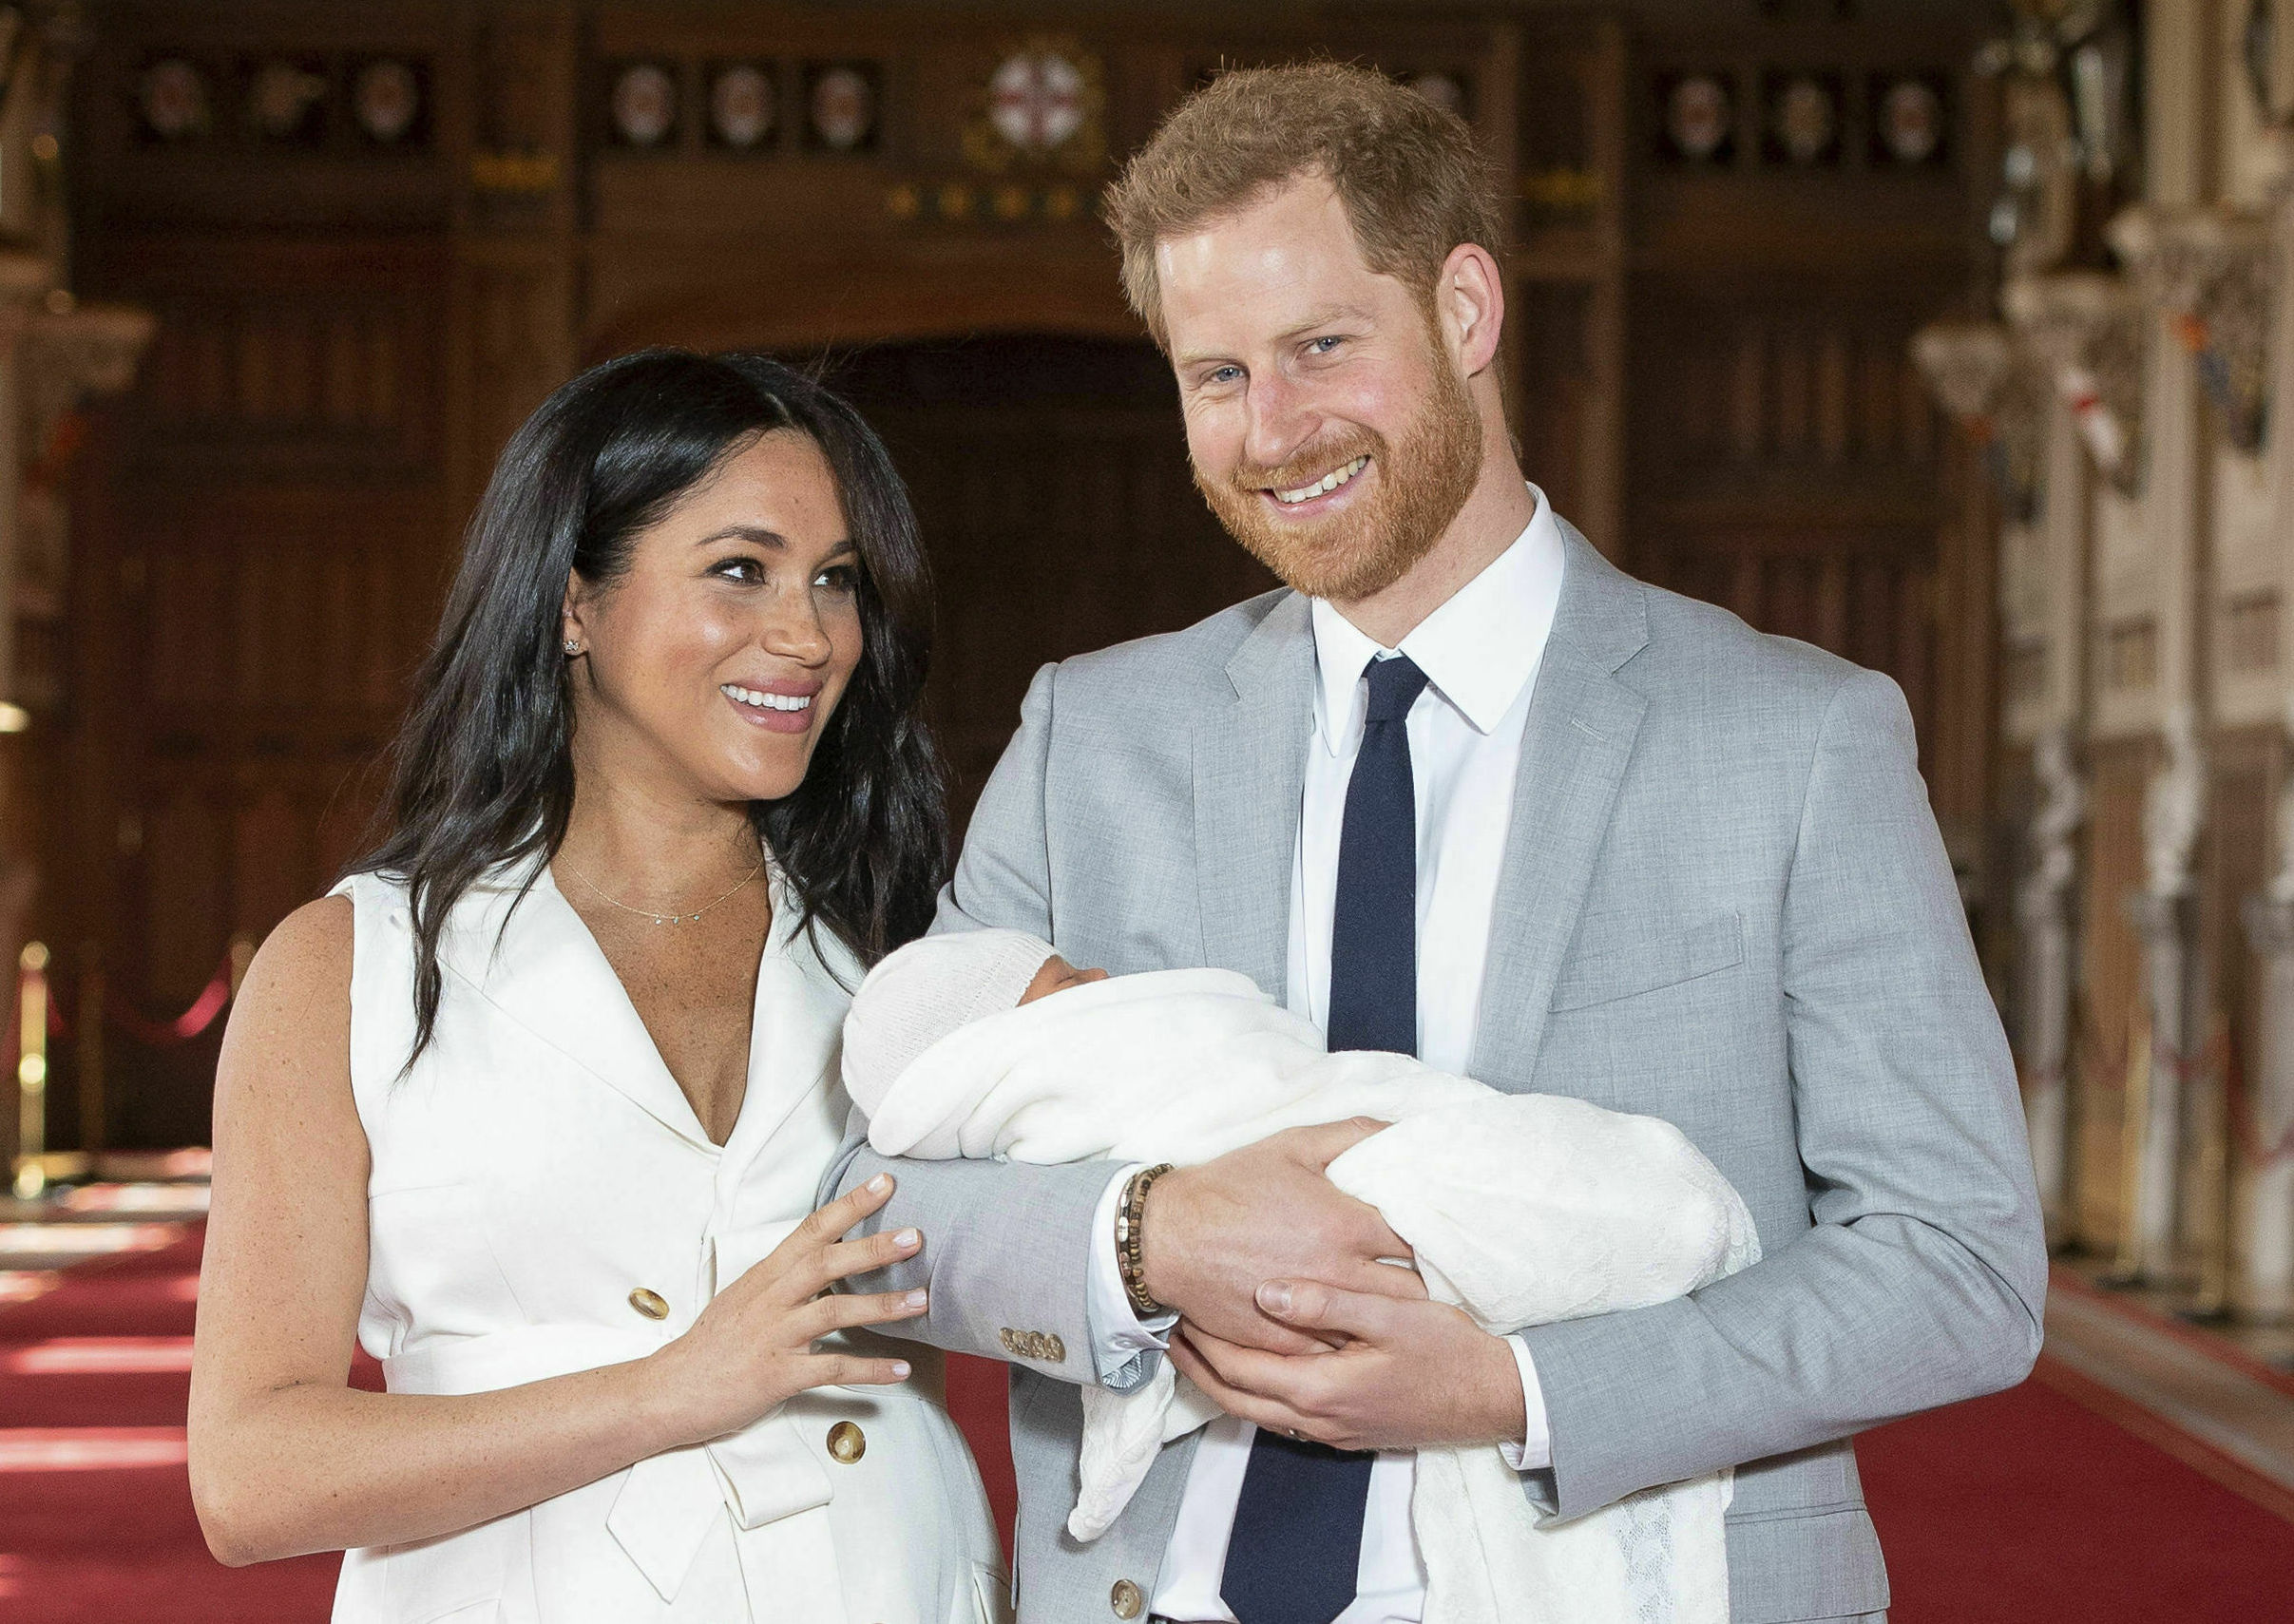 Britain's Prince Harry and Meghan, Duchess of Sussex, during a photocall with their newborn son, in St George's Hall at Windsor Castle, Windsor, south England, Wednesday May 8, 2019